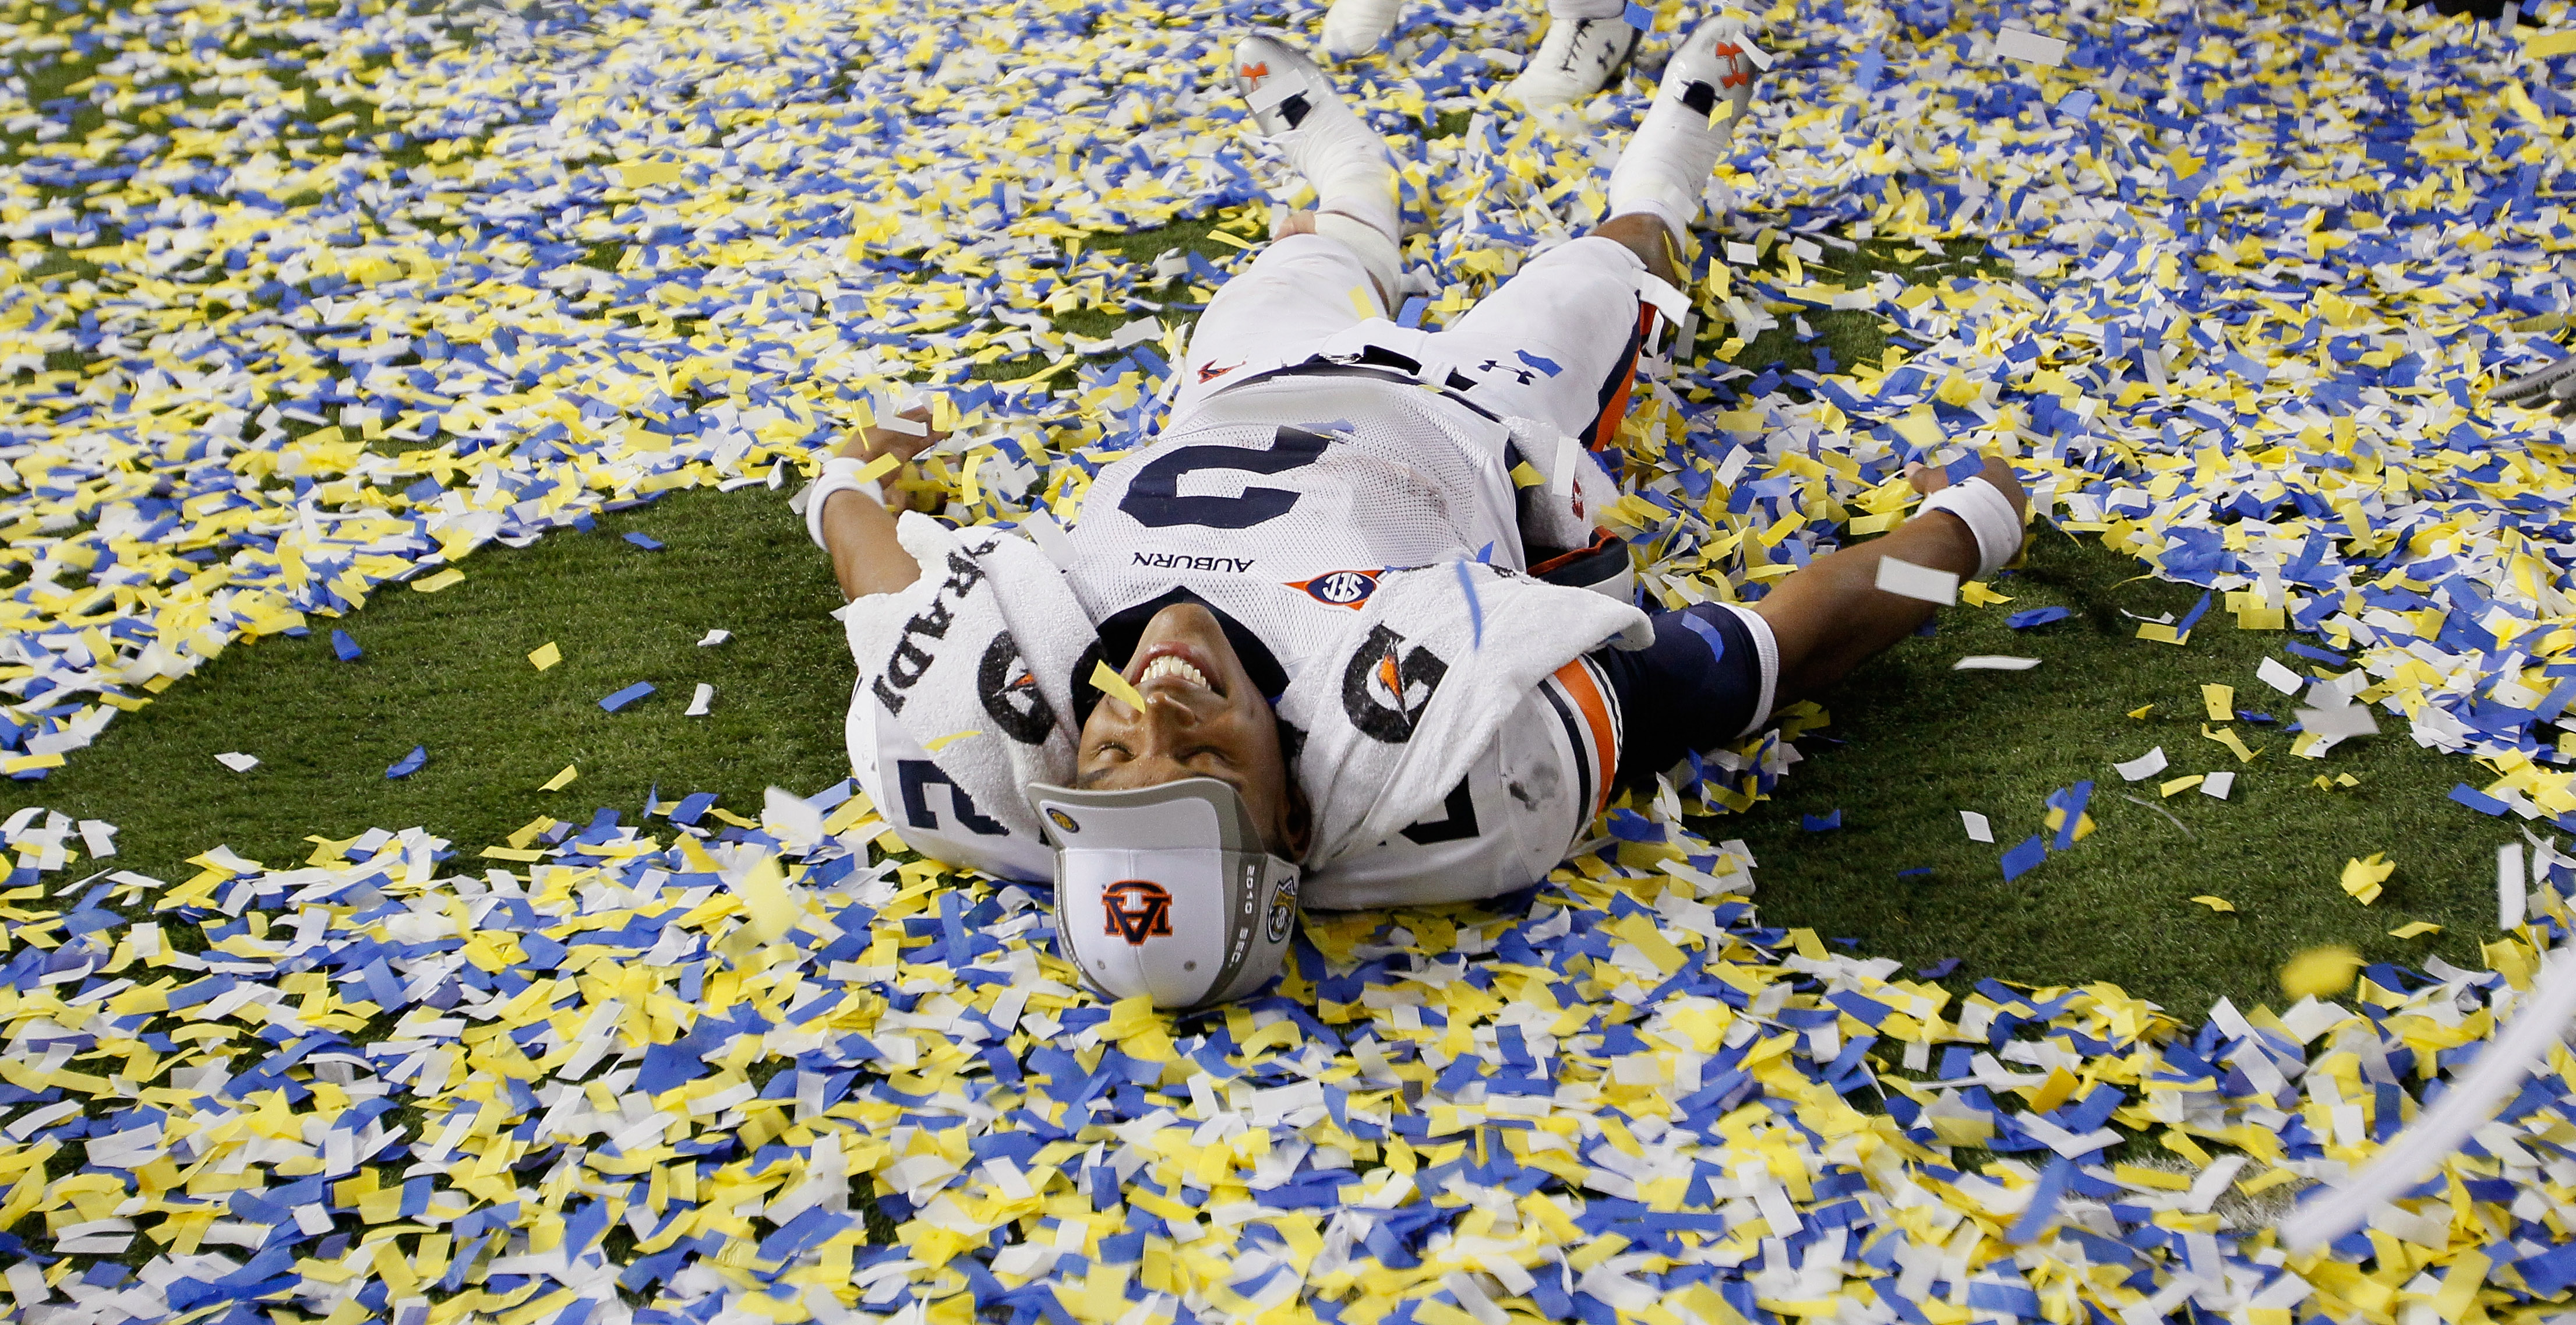 ATLANTA, GA - DECEMBER 04:  Quarterback Cam Newton #2 of the Auburn Tigers makes a 'snow angel' in the confetti as he celebrates after their 56-17 win over the South Carolina Gamecocks during the 2010 SEC Championship at Georgia Dome on December 4, 2010 i